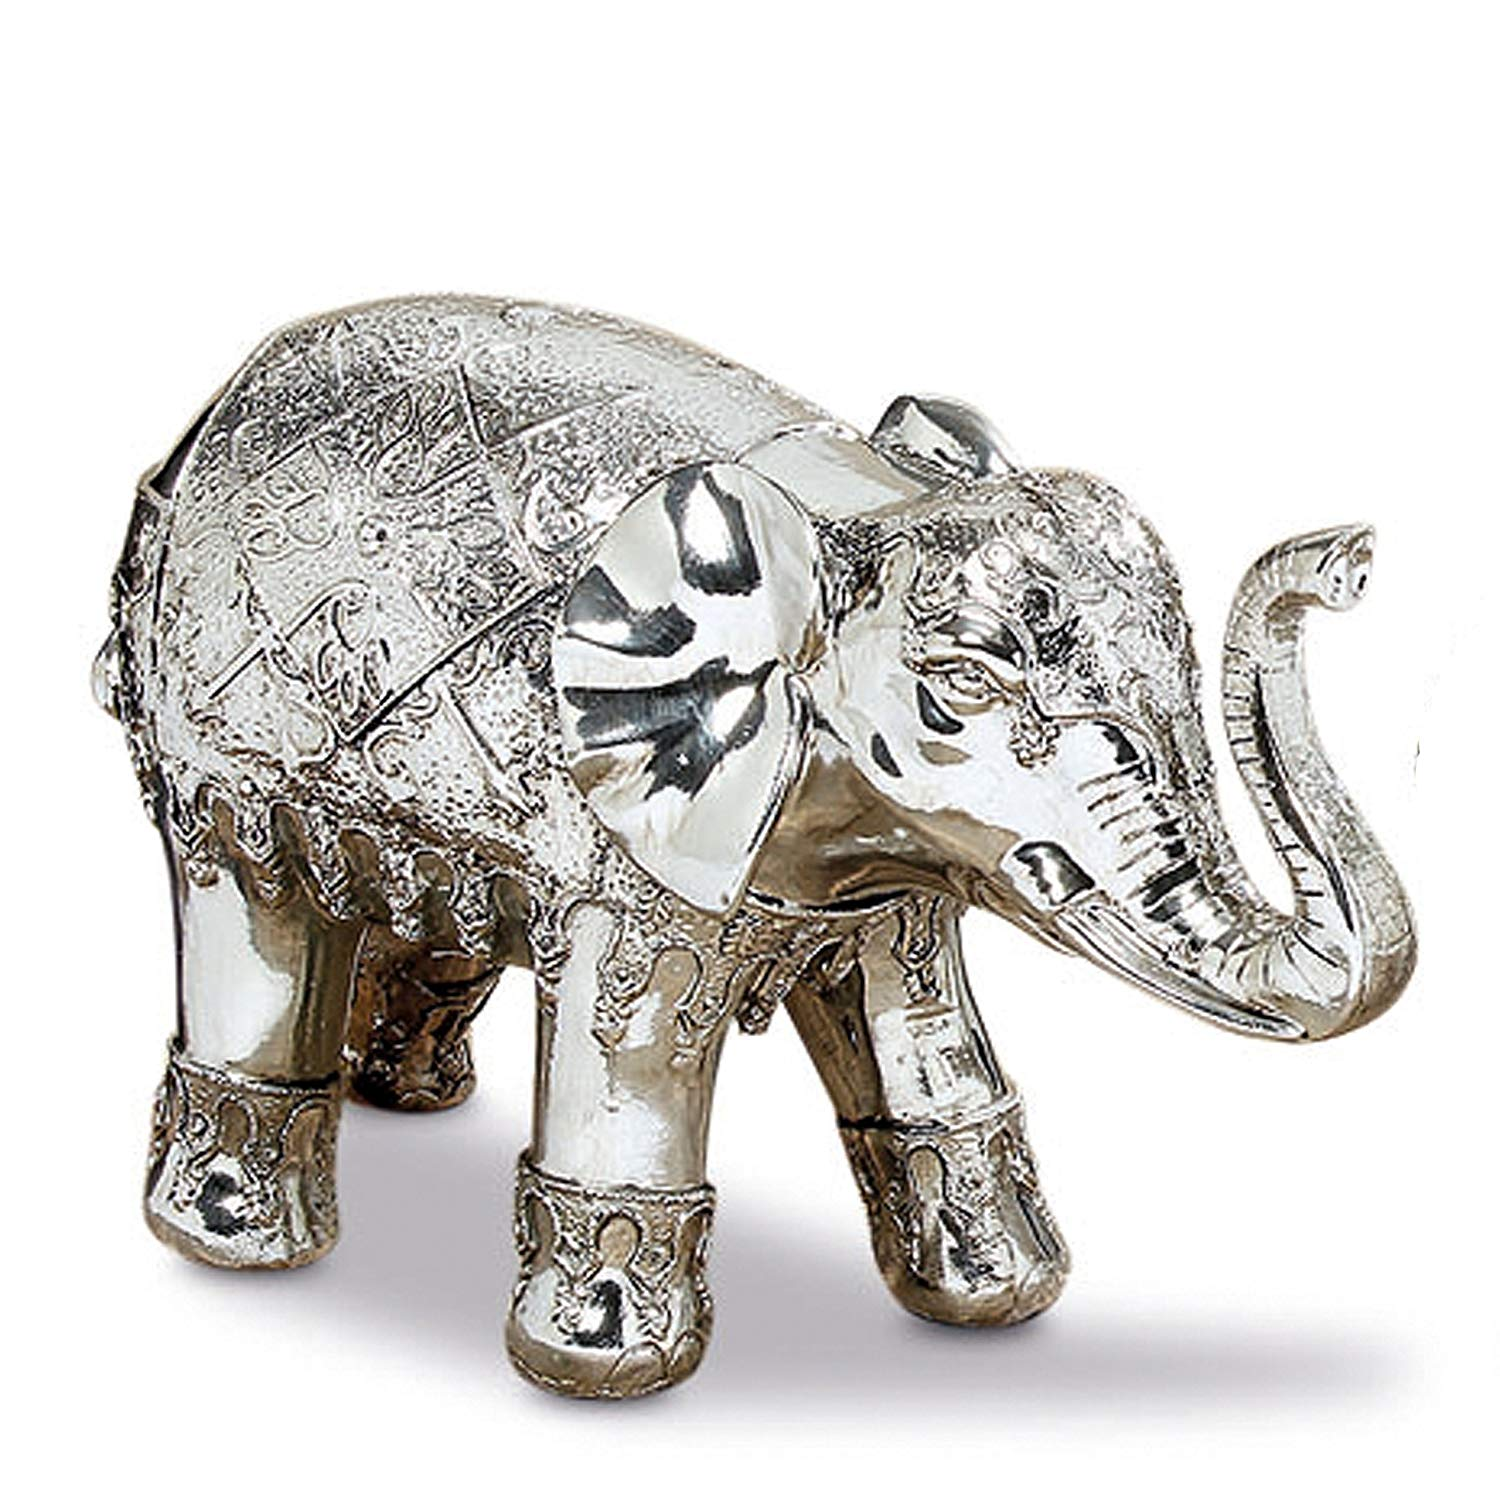 Whole House Worlds The Good Luck and Happiness Festival Elephant, Indoor or Outdoor Garden Statue,Handmade, Silver Finish, Cast Poly-resin, Weather Resistant, 10 1/2 inches Long, By